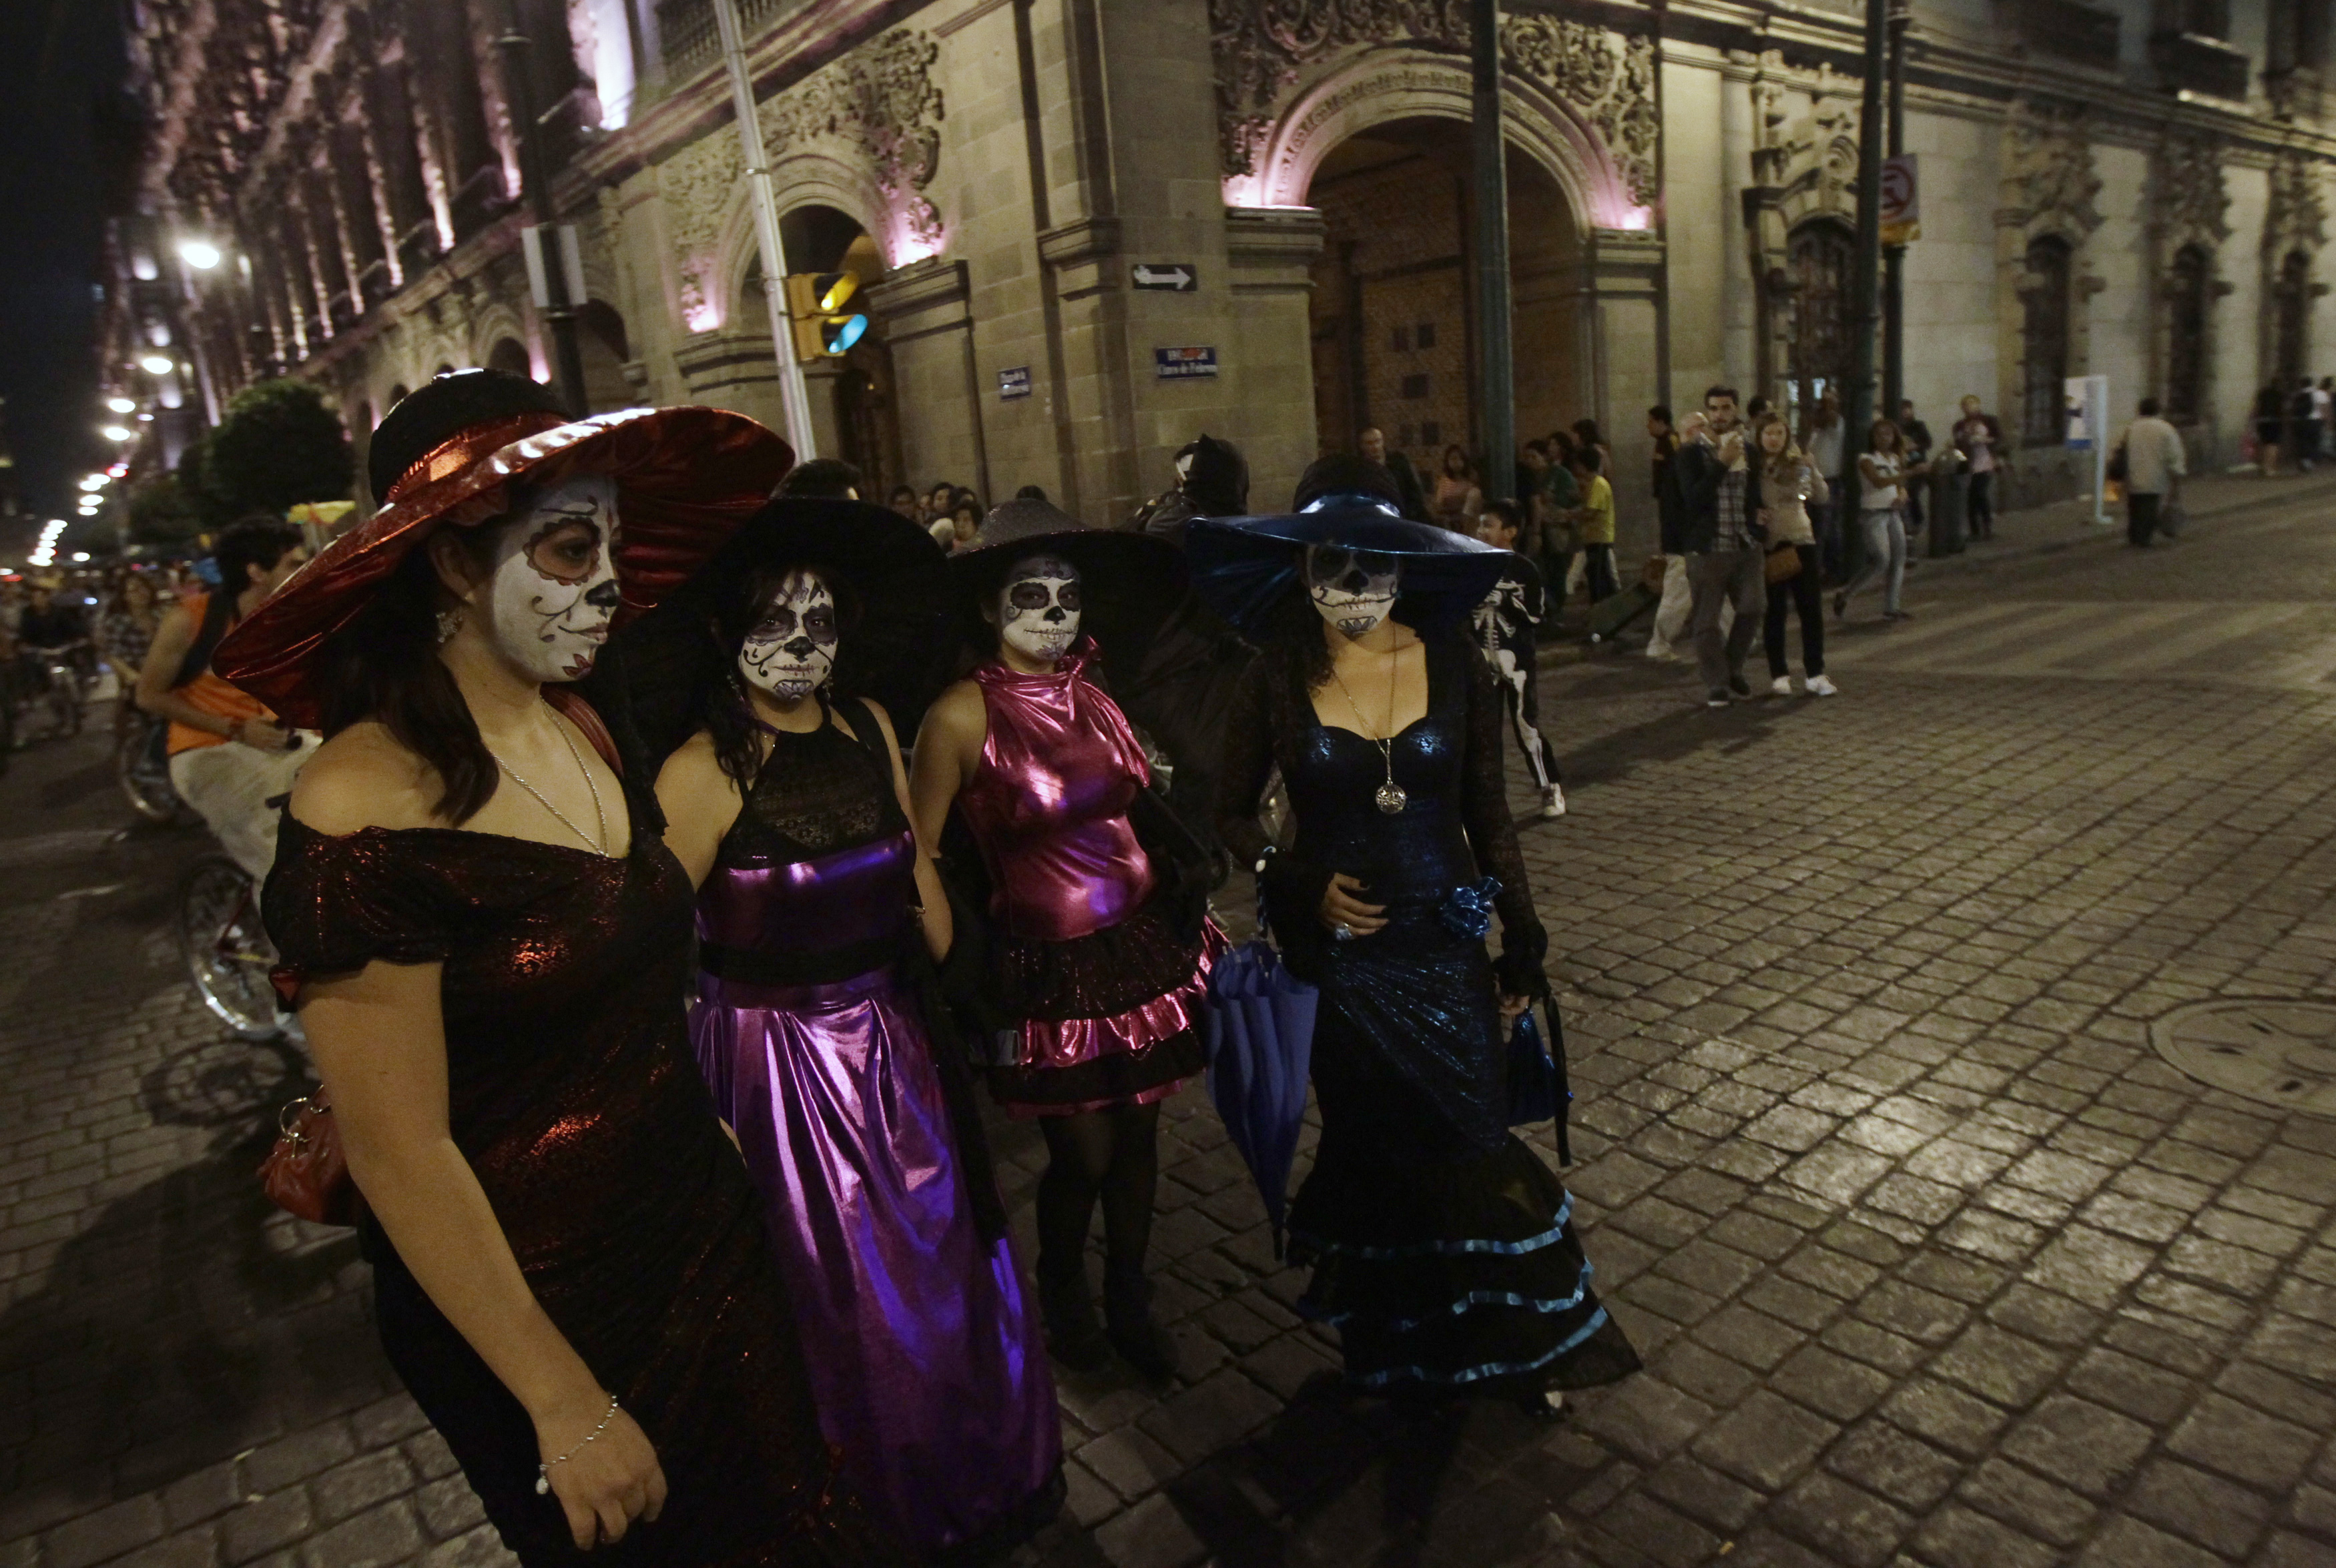 La Catrina Skeleton Lady Gets Star Treatment For Mexican